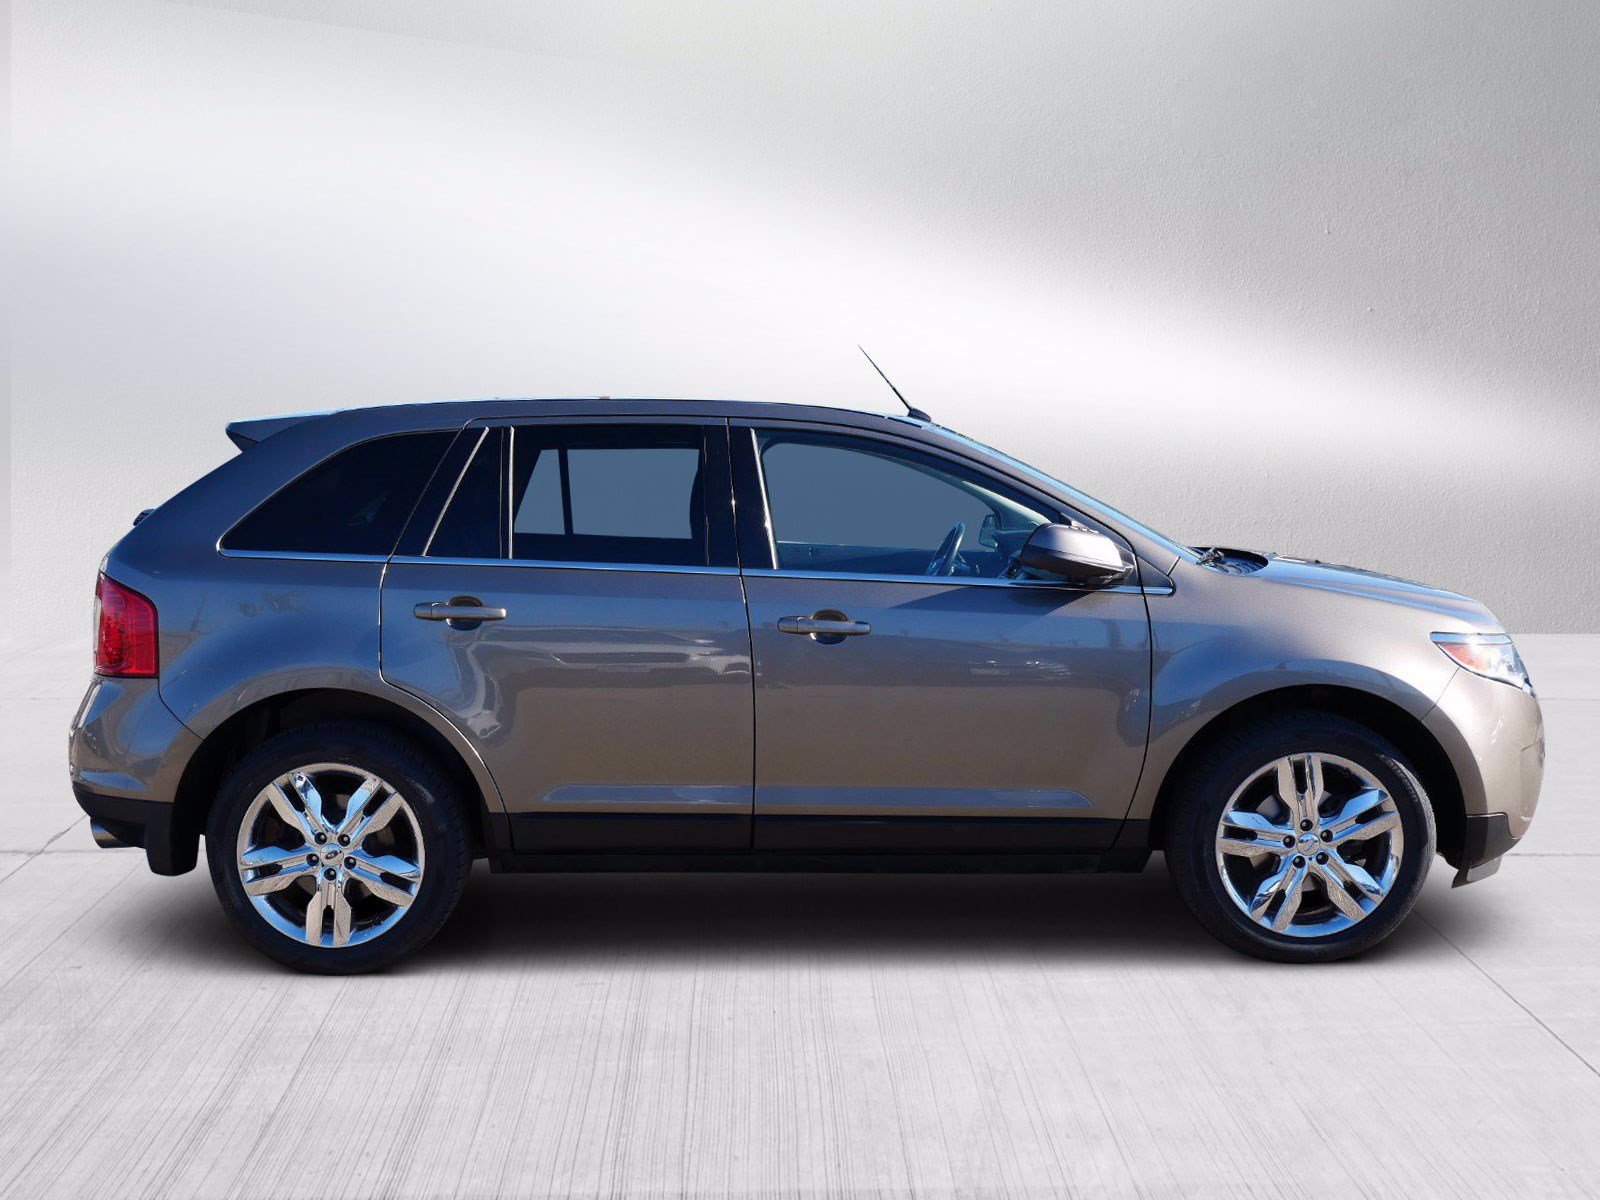 Used 2013 Ford Edge Limited with VIN 2FMDK4KC1DBC17485 for sale in Bloomington, Minnesota